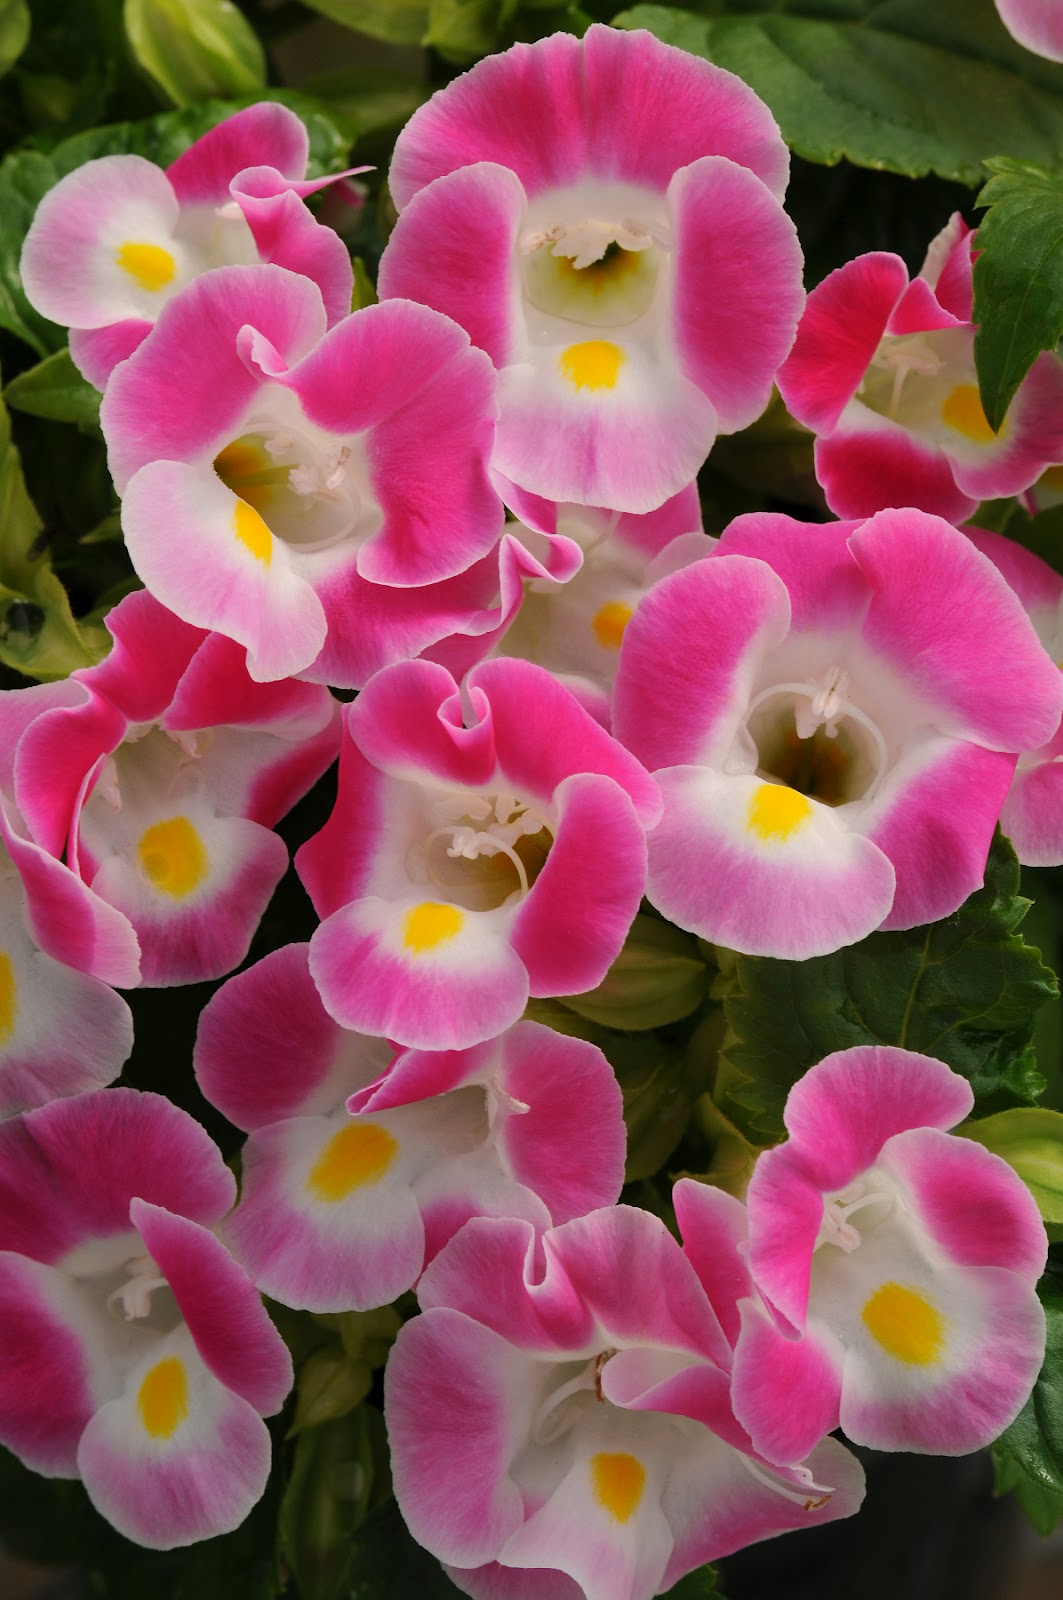 Petal talk newest annuals for sun and shade newest annuals for sun and shade izmirmasajfo